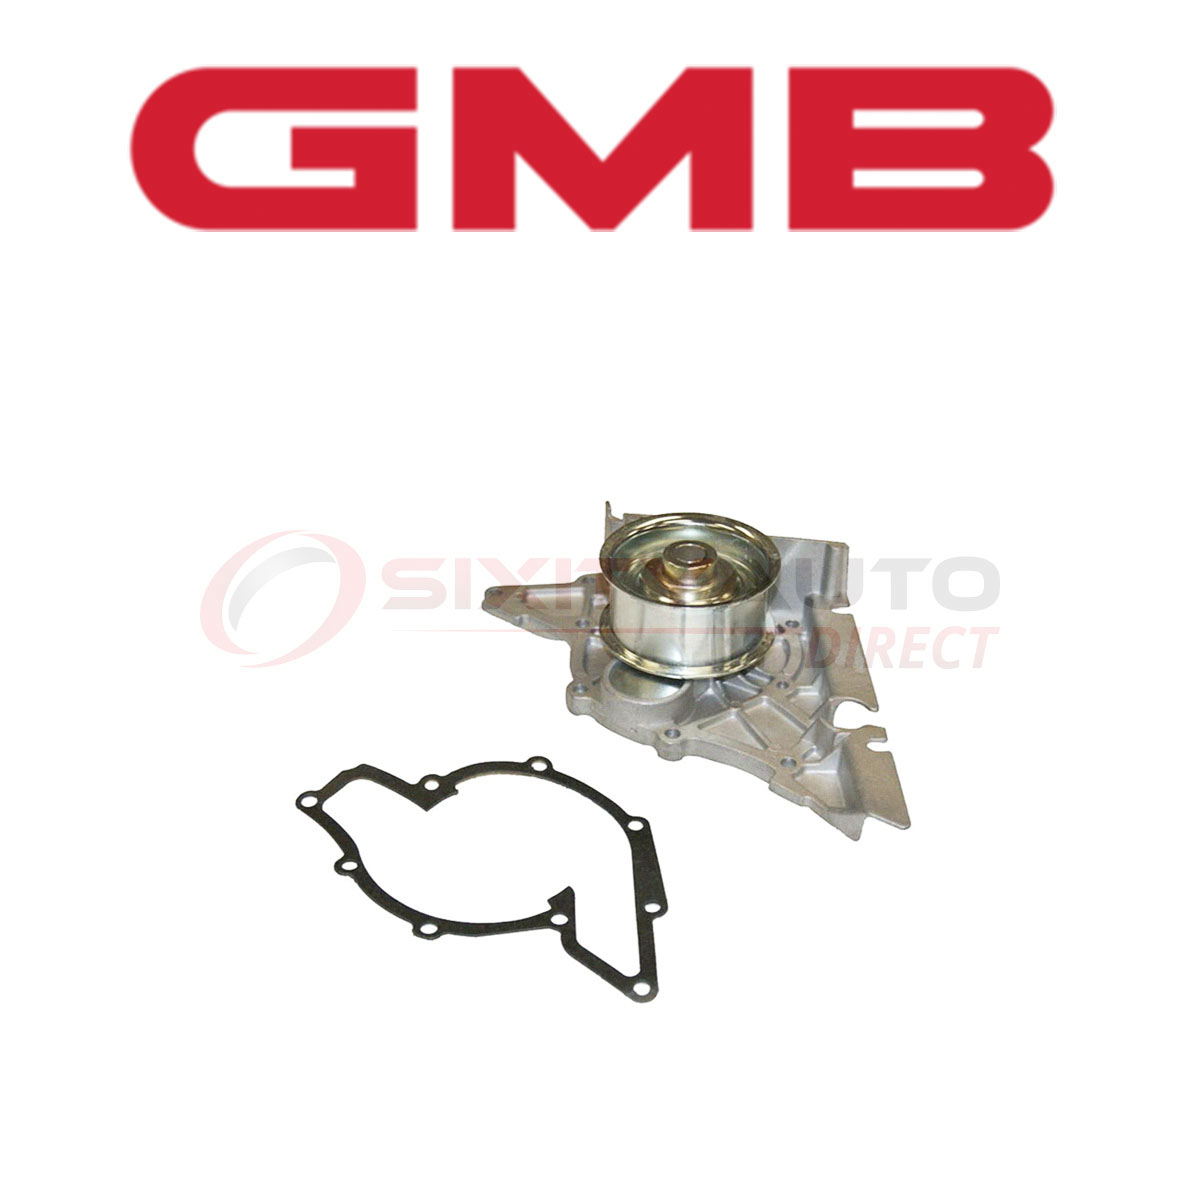 Gmb Water Pump For 1996-2001 Audi A6 2 8l V6